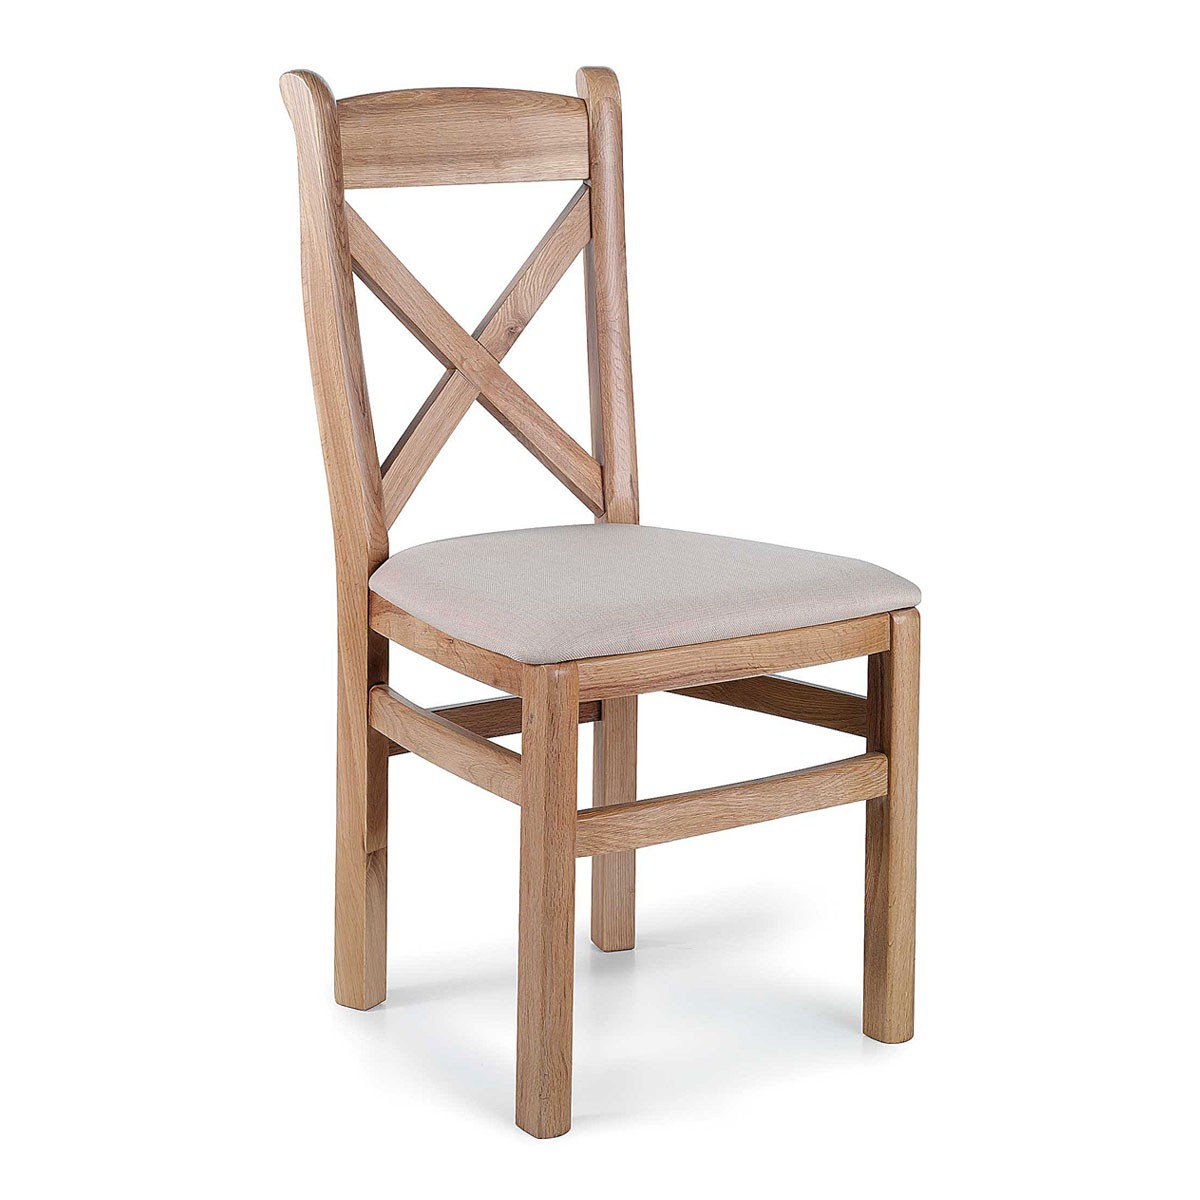 Dining room chairs made of oak Tuscany dining room chair made of oak with cross back IJSGAXC